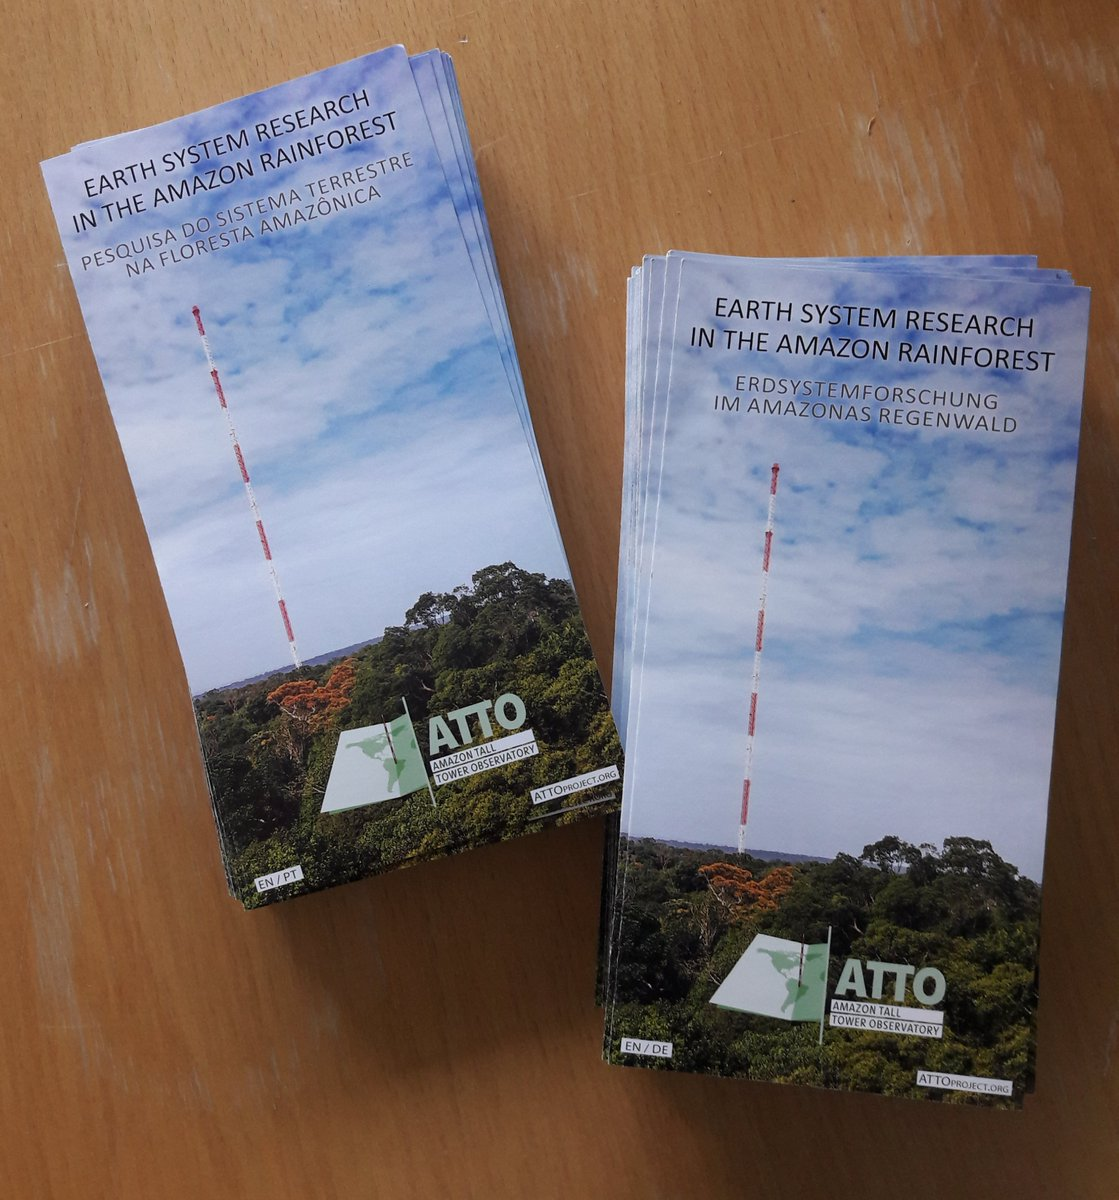 ATTO - Amazon Tall Tower Observatory | Earth system research